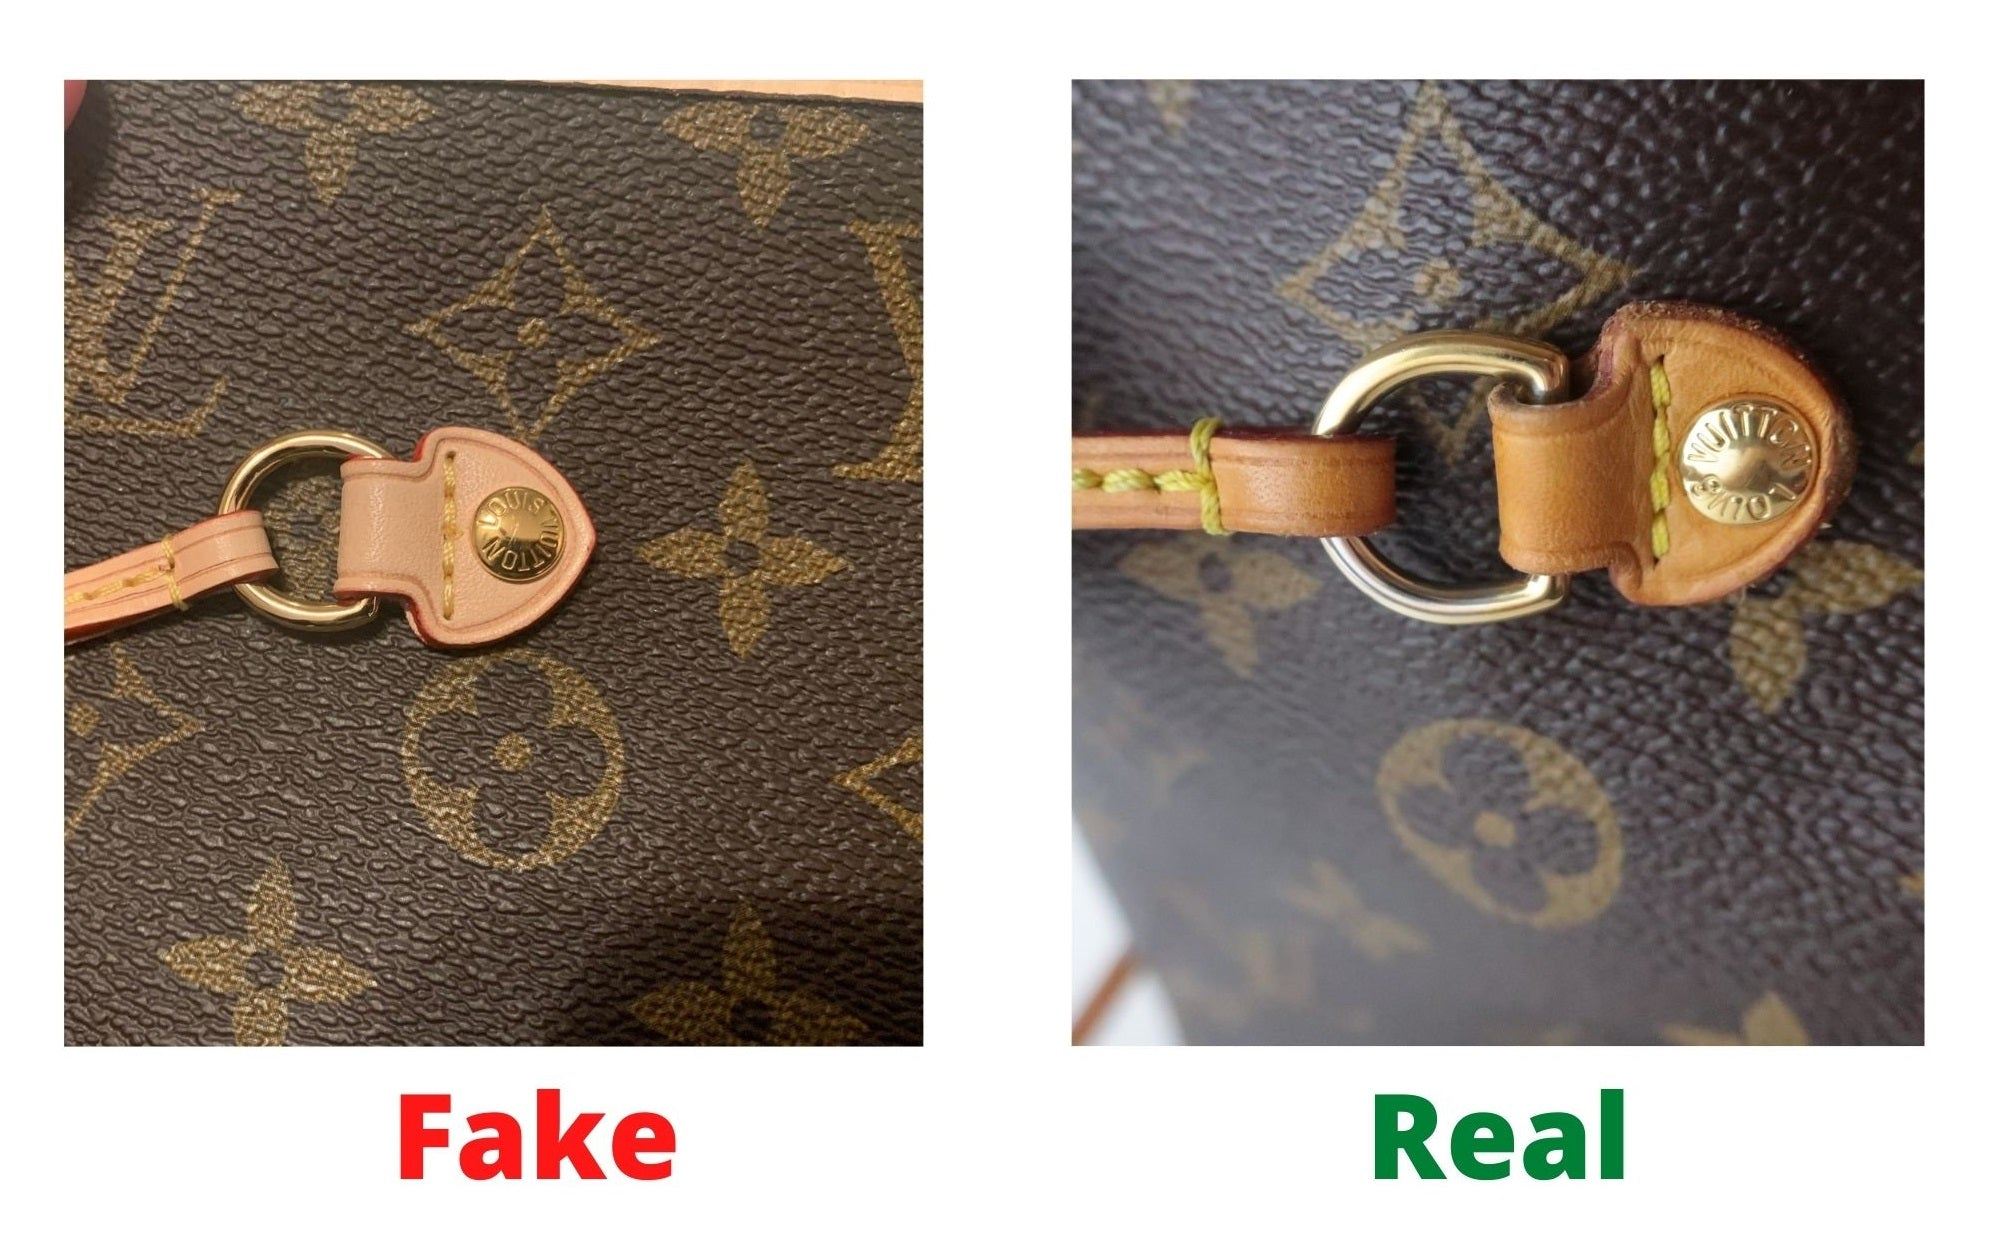 Fake Louis Vuitton Neverfull vs Real: Important Details You Should Definitely Pay Attention To (With Photo Examples) fake vs real neverfull monogram outside pin